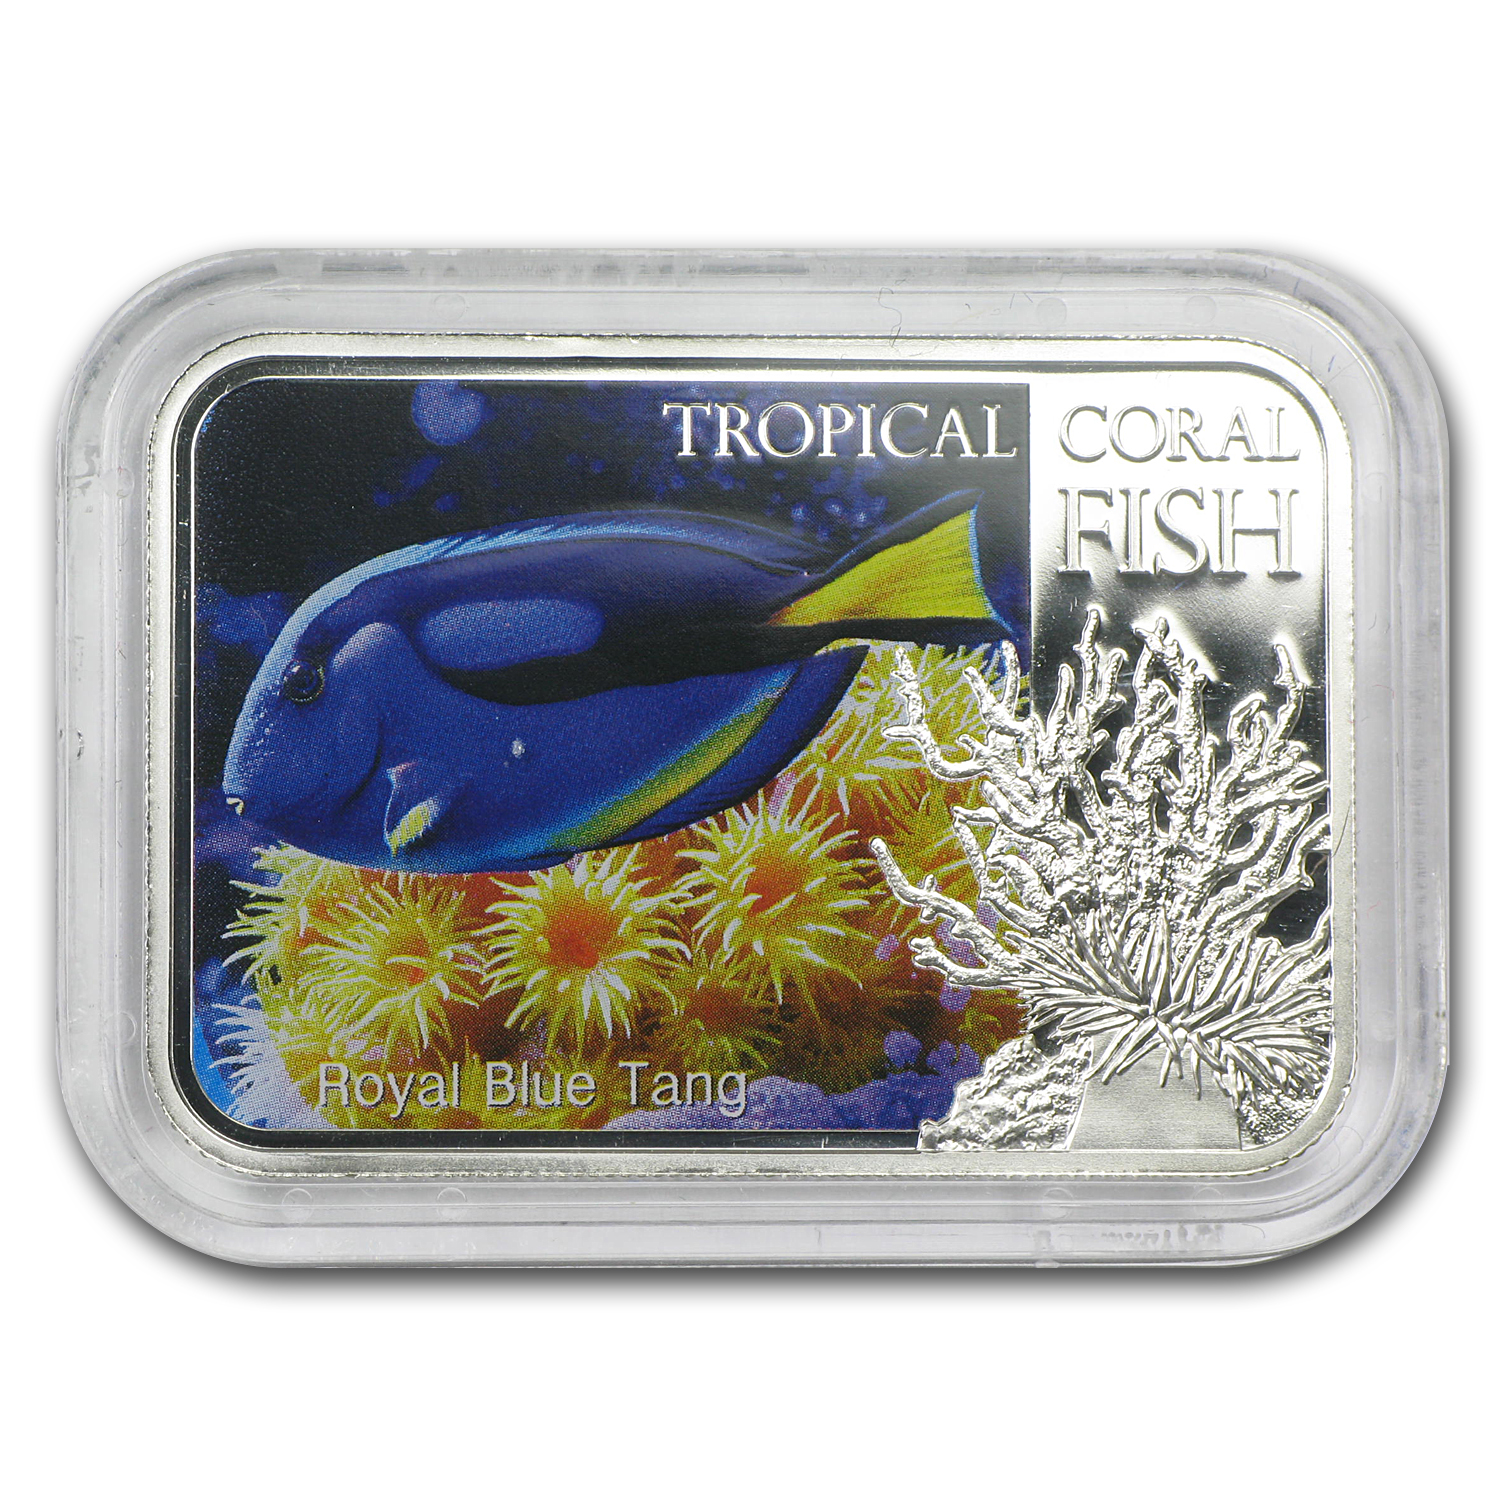 2013 1 oz Silver $1 Niue Royal Blue Tang Proof